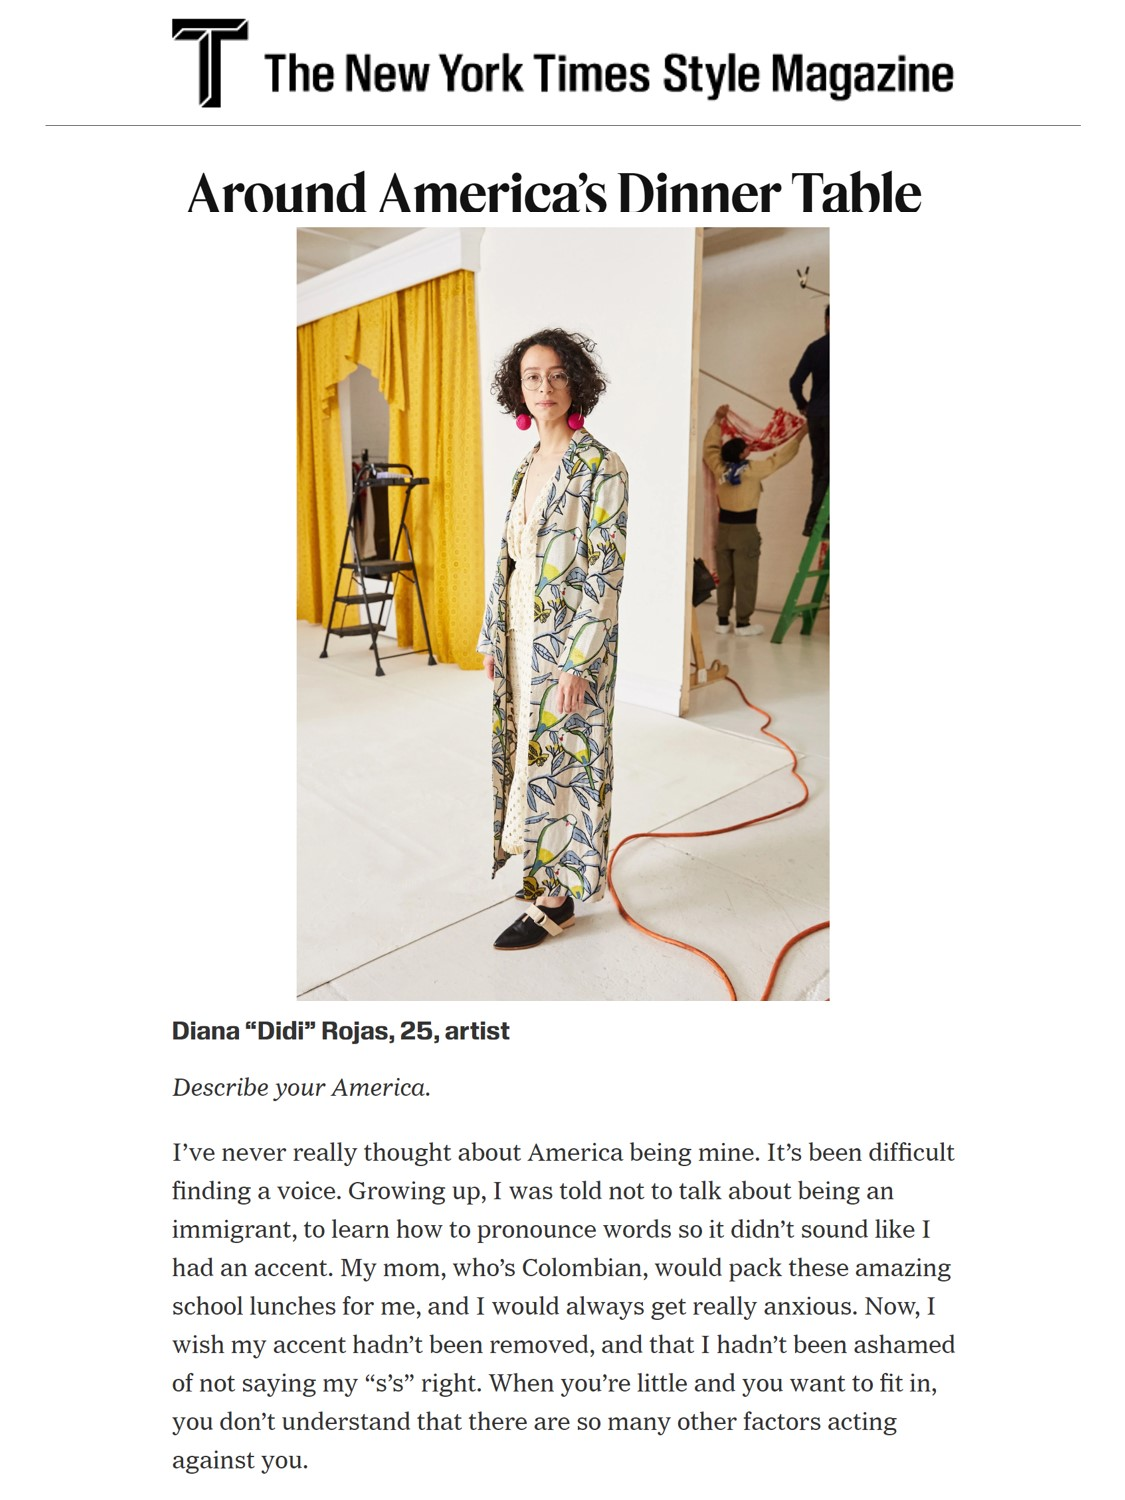 NY TIMES - America's Dinner Table 2 didi rojas, Artis.jpg